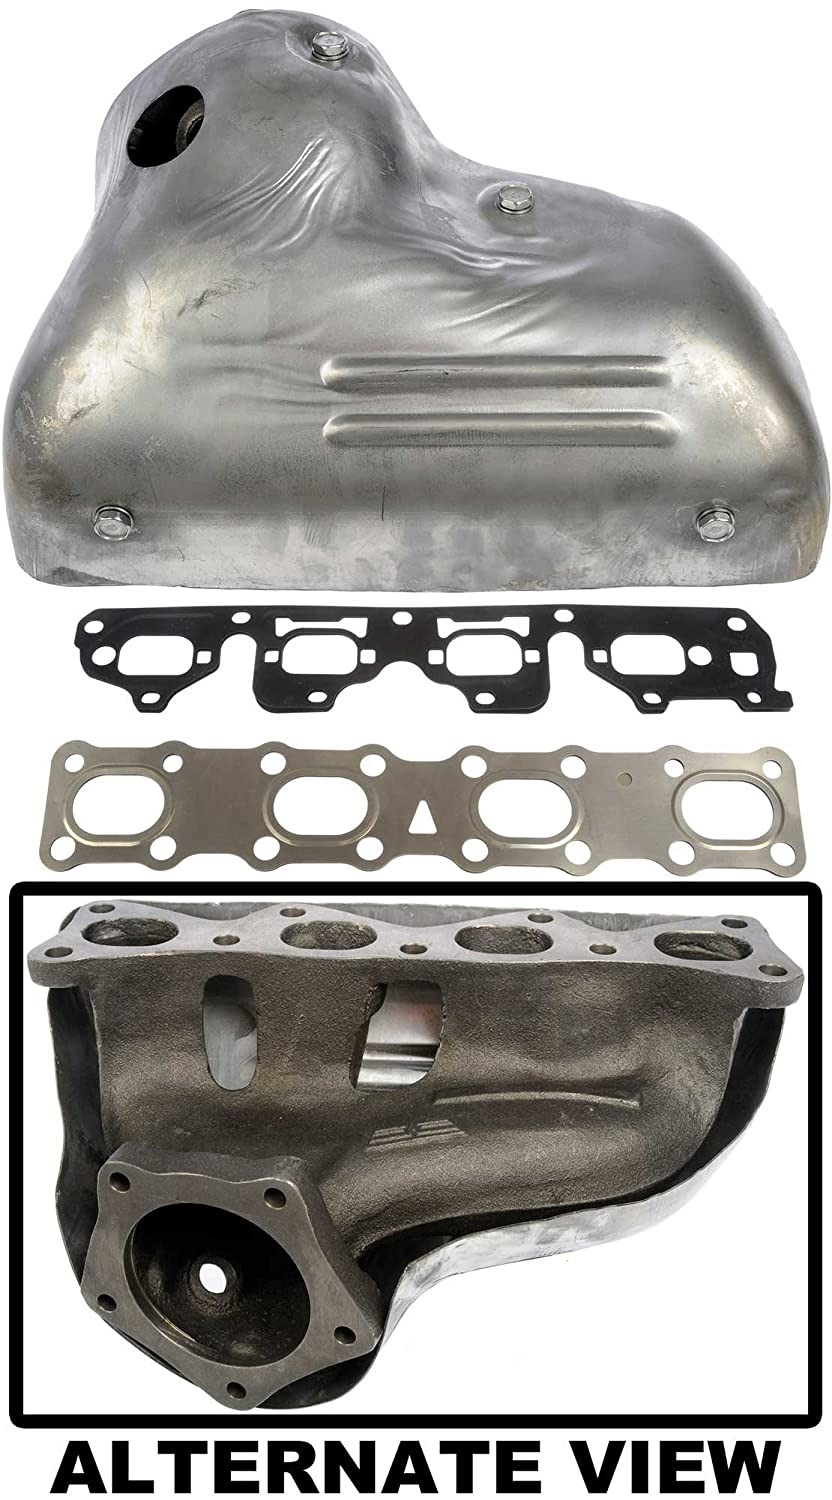 Upgraded Thicker Cast Iron Design Replaces 0K08A-13451C APDTY 785776 Exhaust Manifold For 1998-2002 Kia Sportage